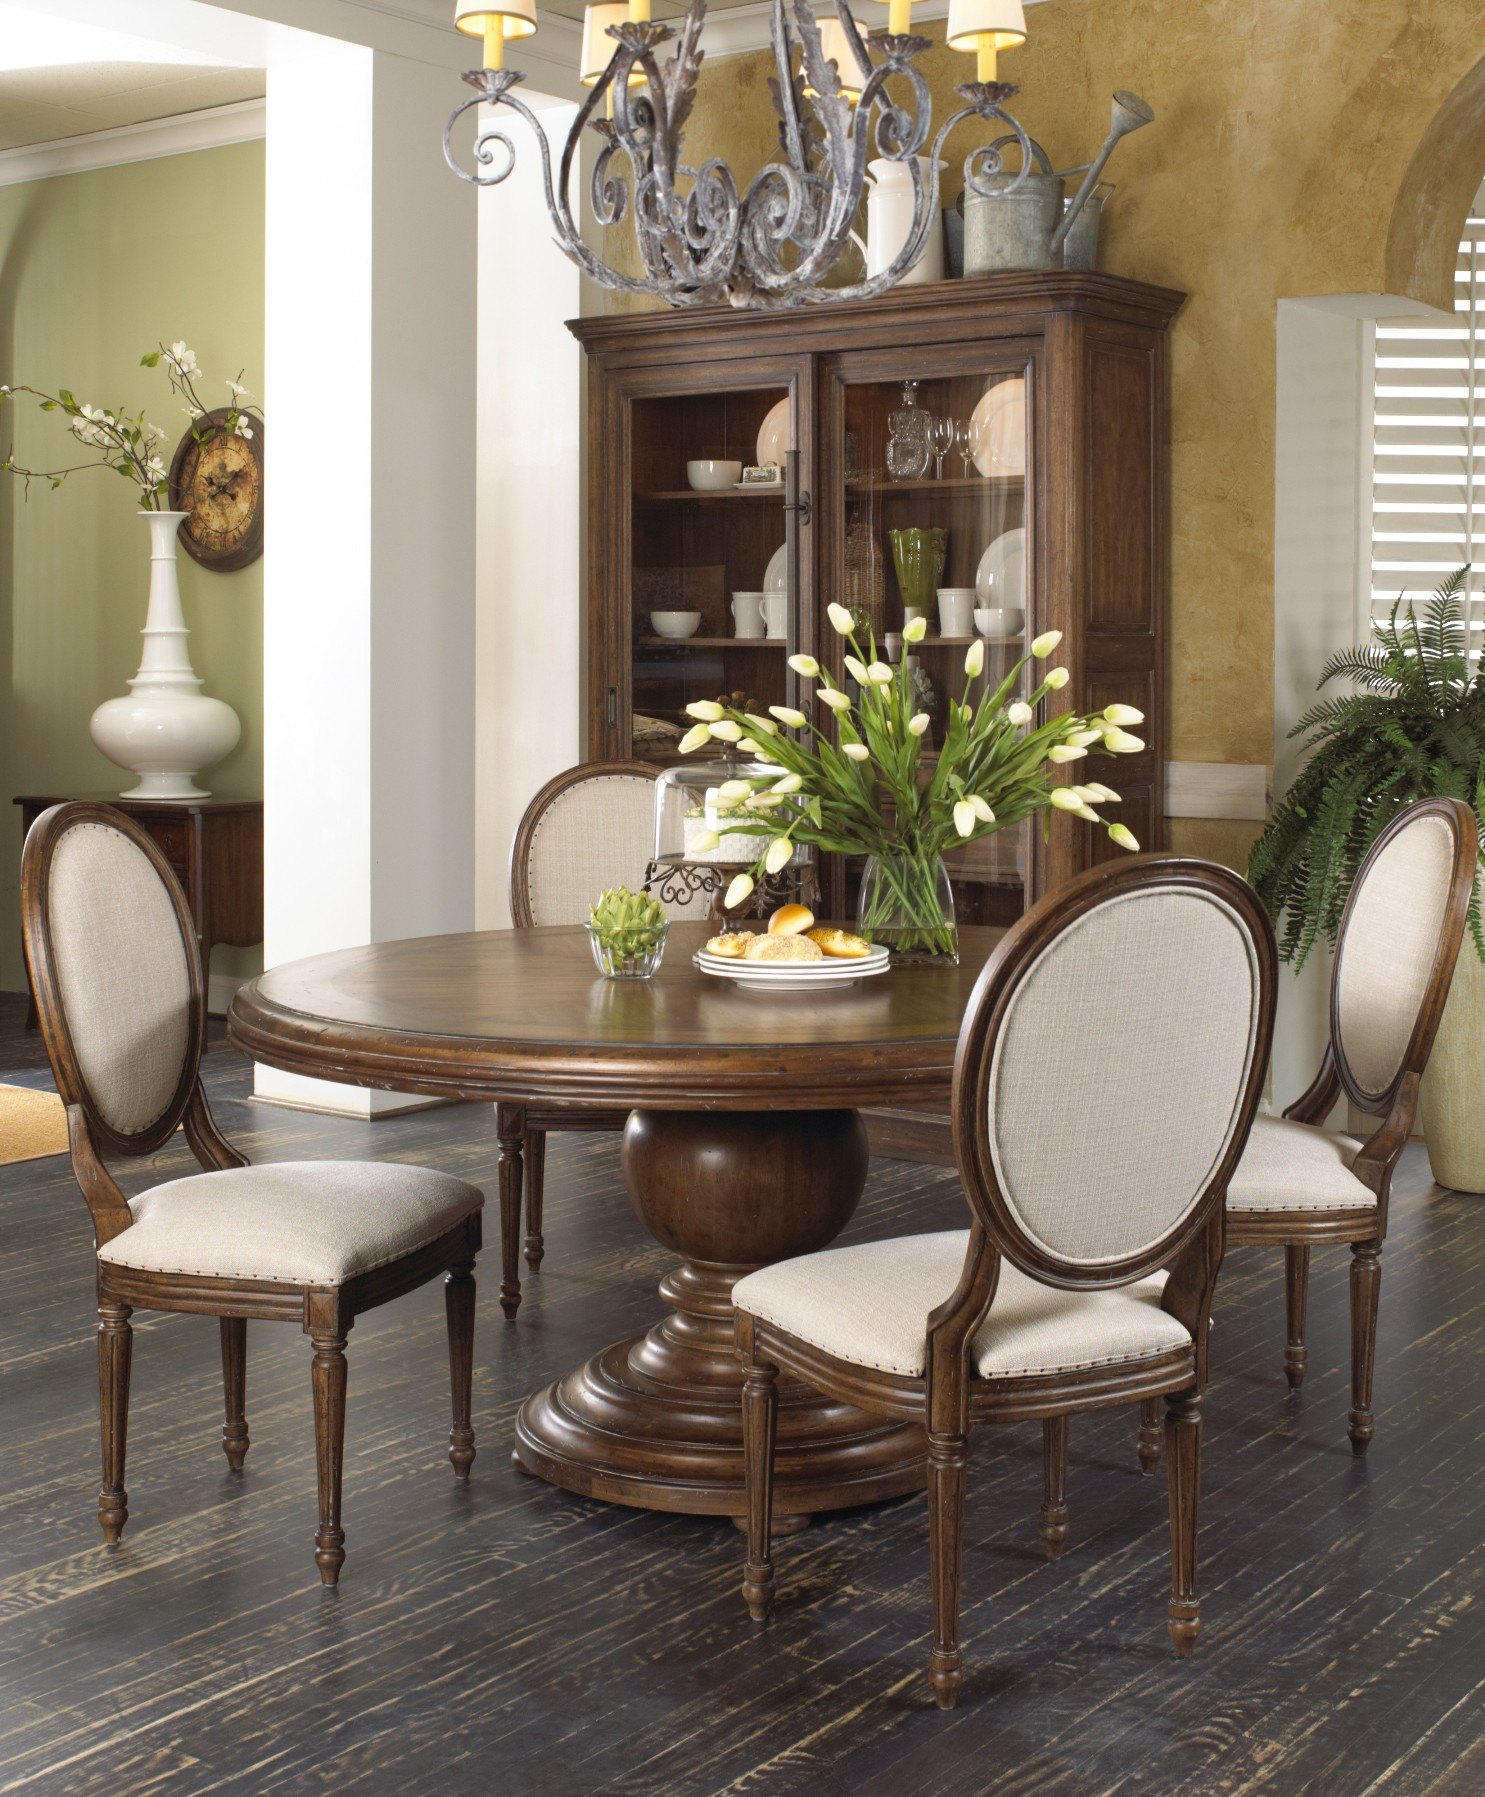 Get Your Own Affordable Yet Stylish Dining Room Set On Sale 21 Get Your Own